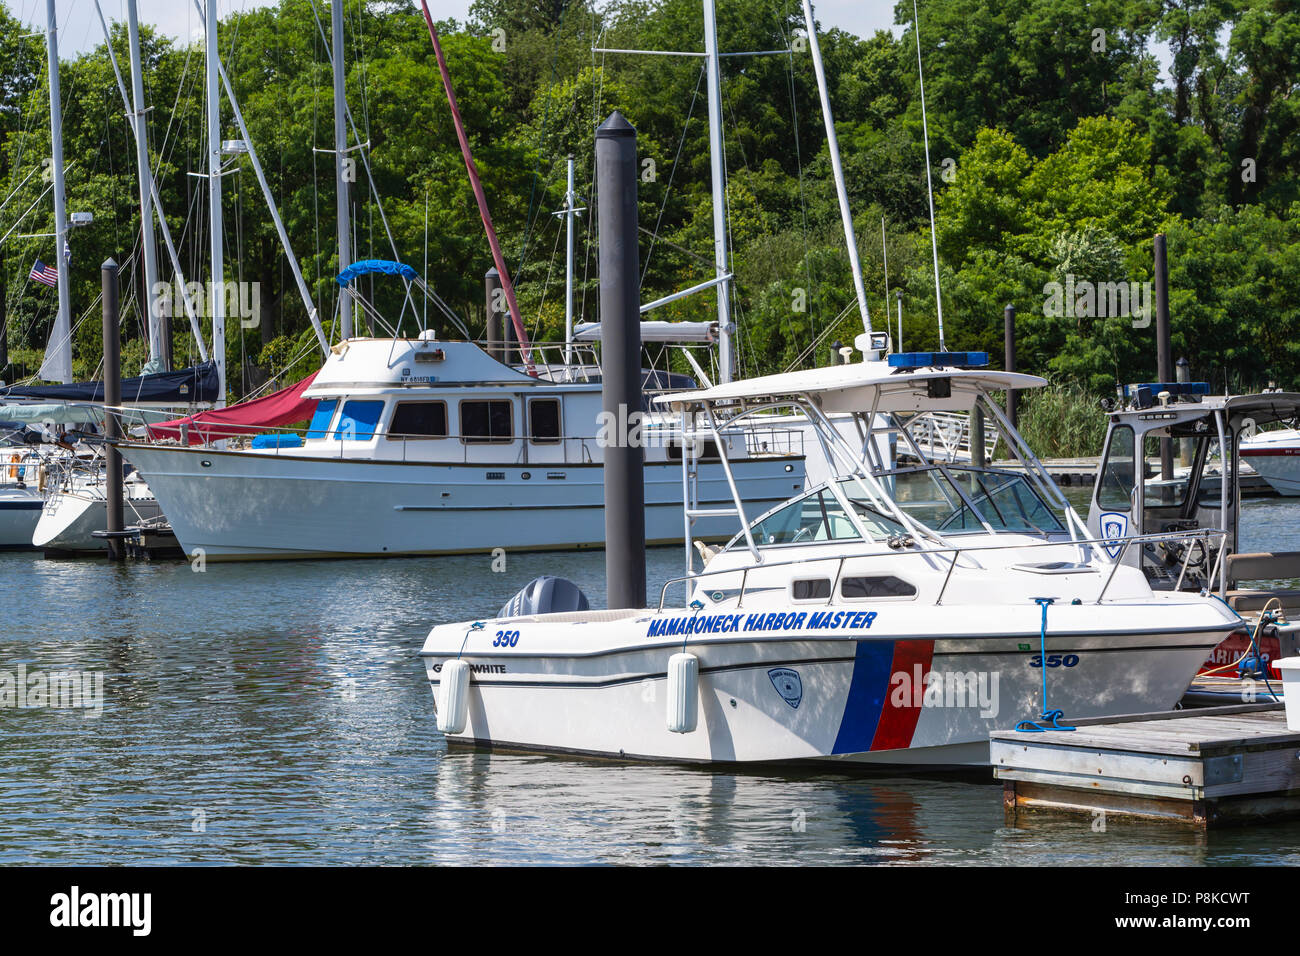 A Mamaroneck Harbor Master's boat docked in the West Basin of Mamaroneck Harbor in Harbor Island Park, Mamaroneck, New York. - Stock Image